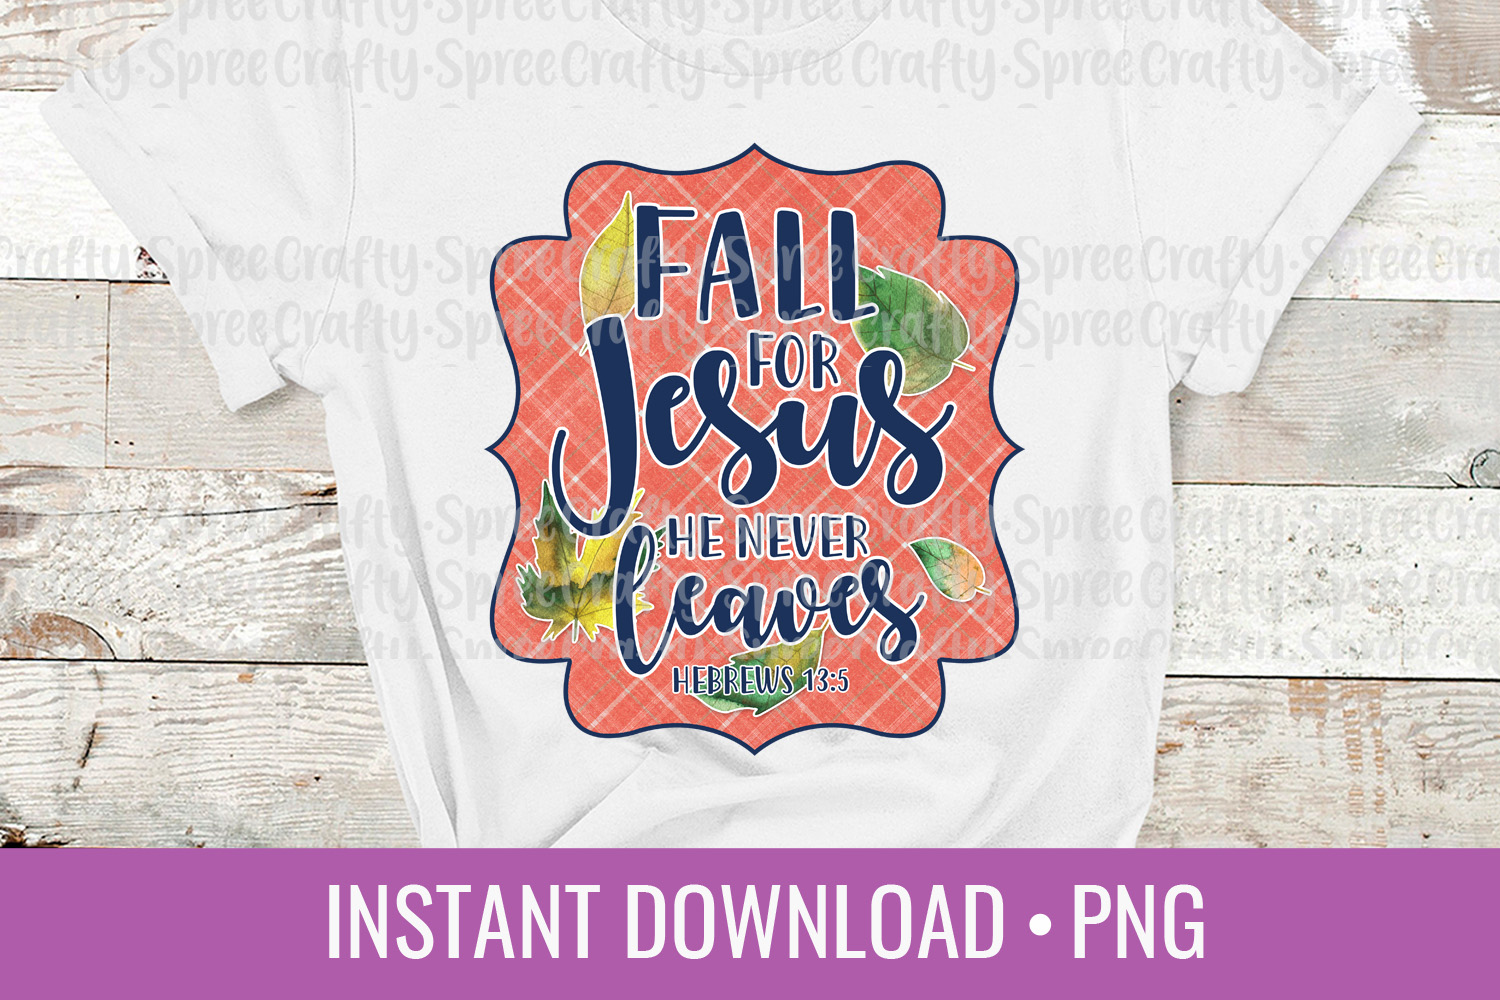 Fall for Jesus He Never Leaves PNG Sublimation DTG Design example image 1